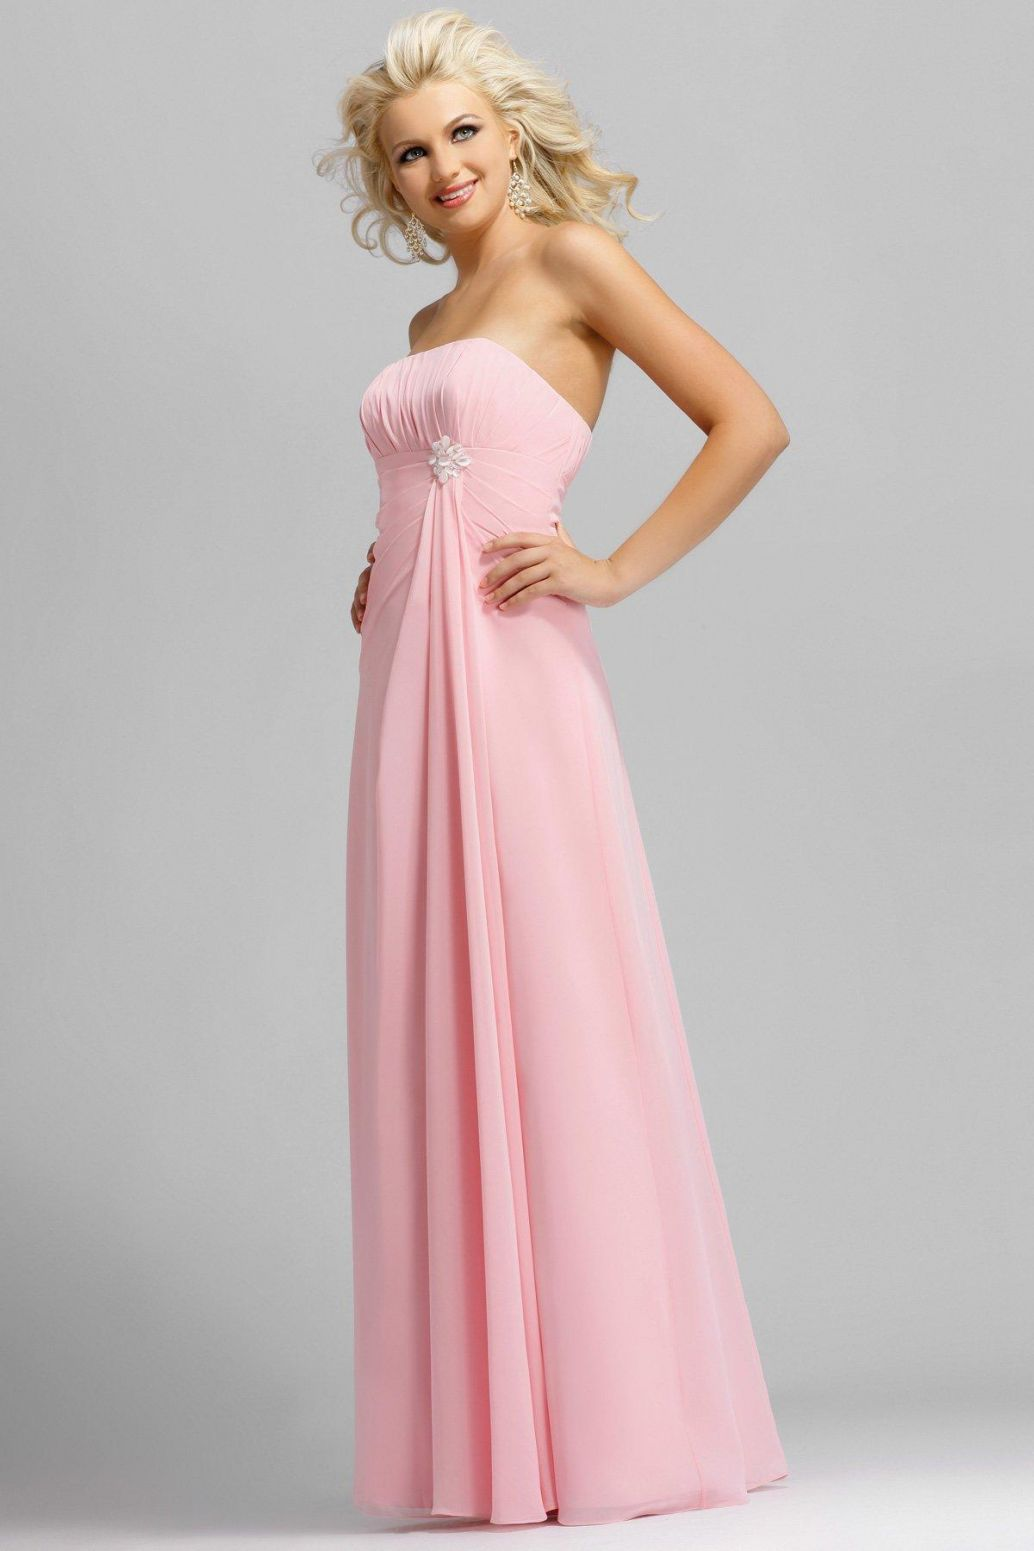 Long bright pink bridesmaid dress designs wedding dress for Image of wedding dresses